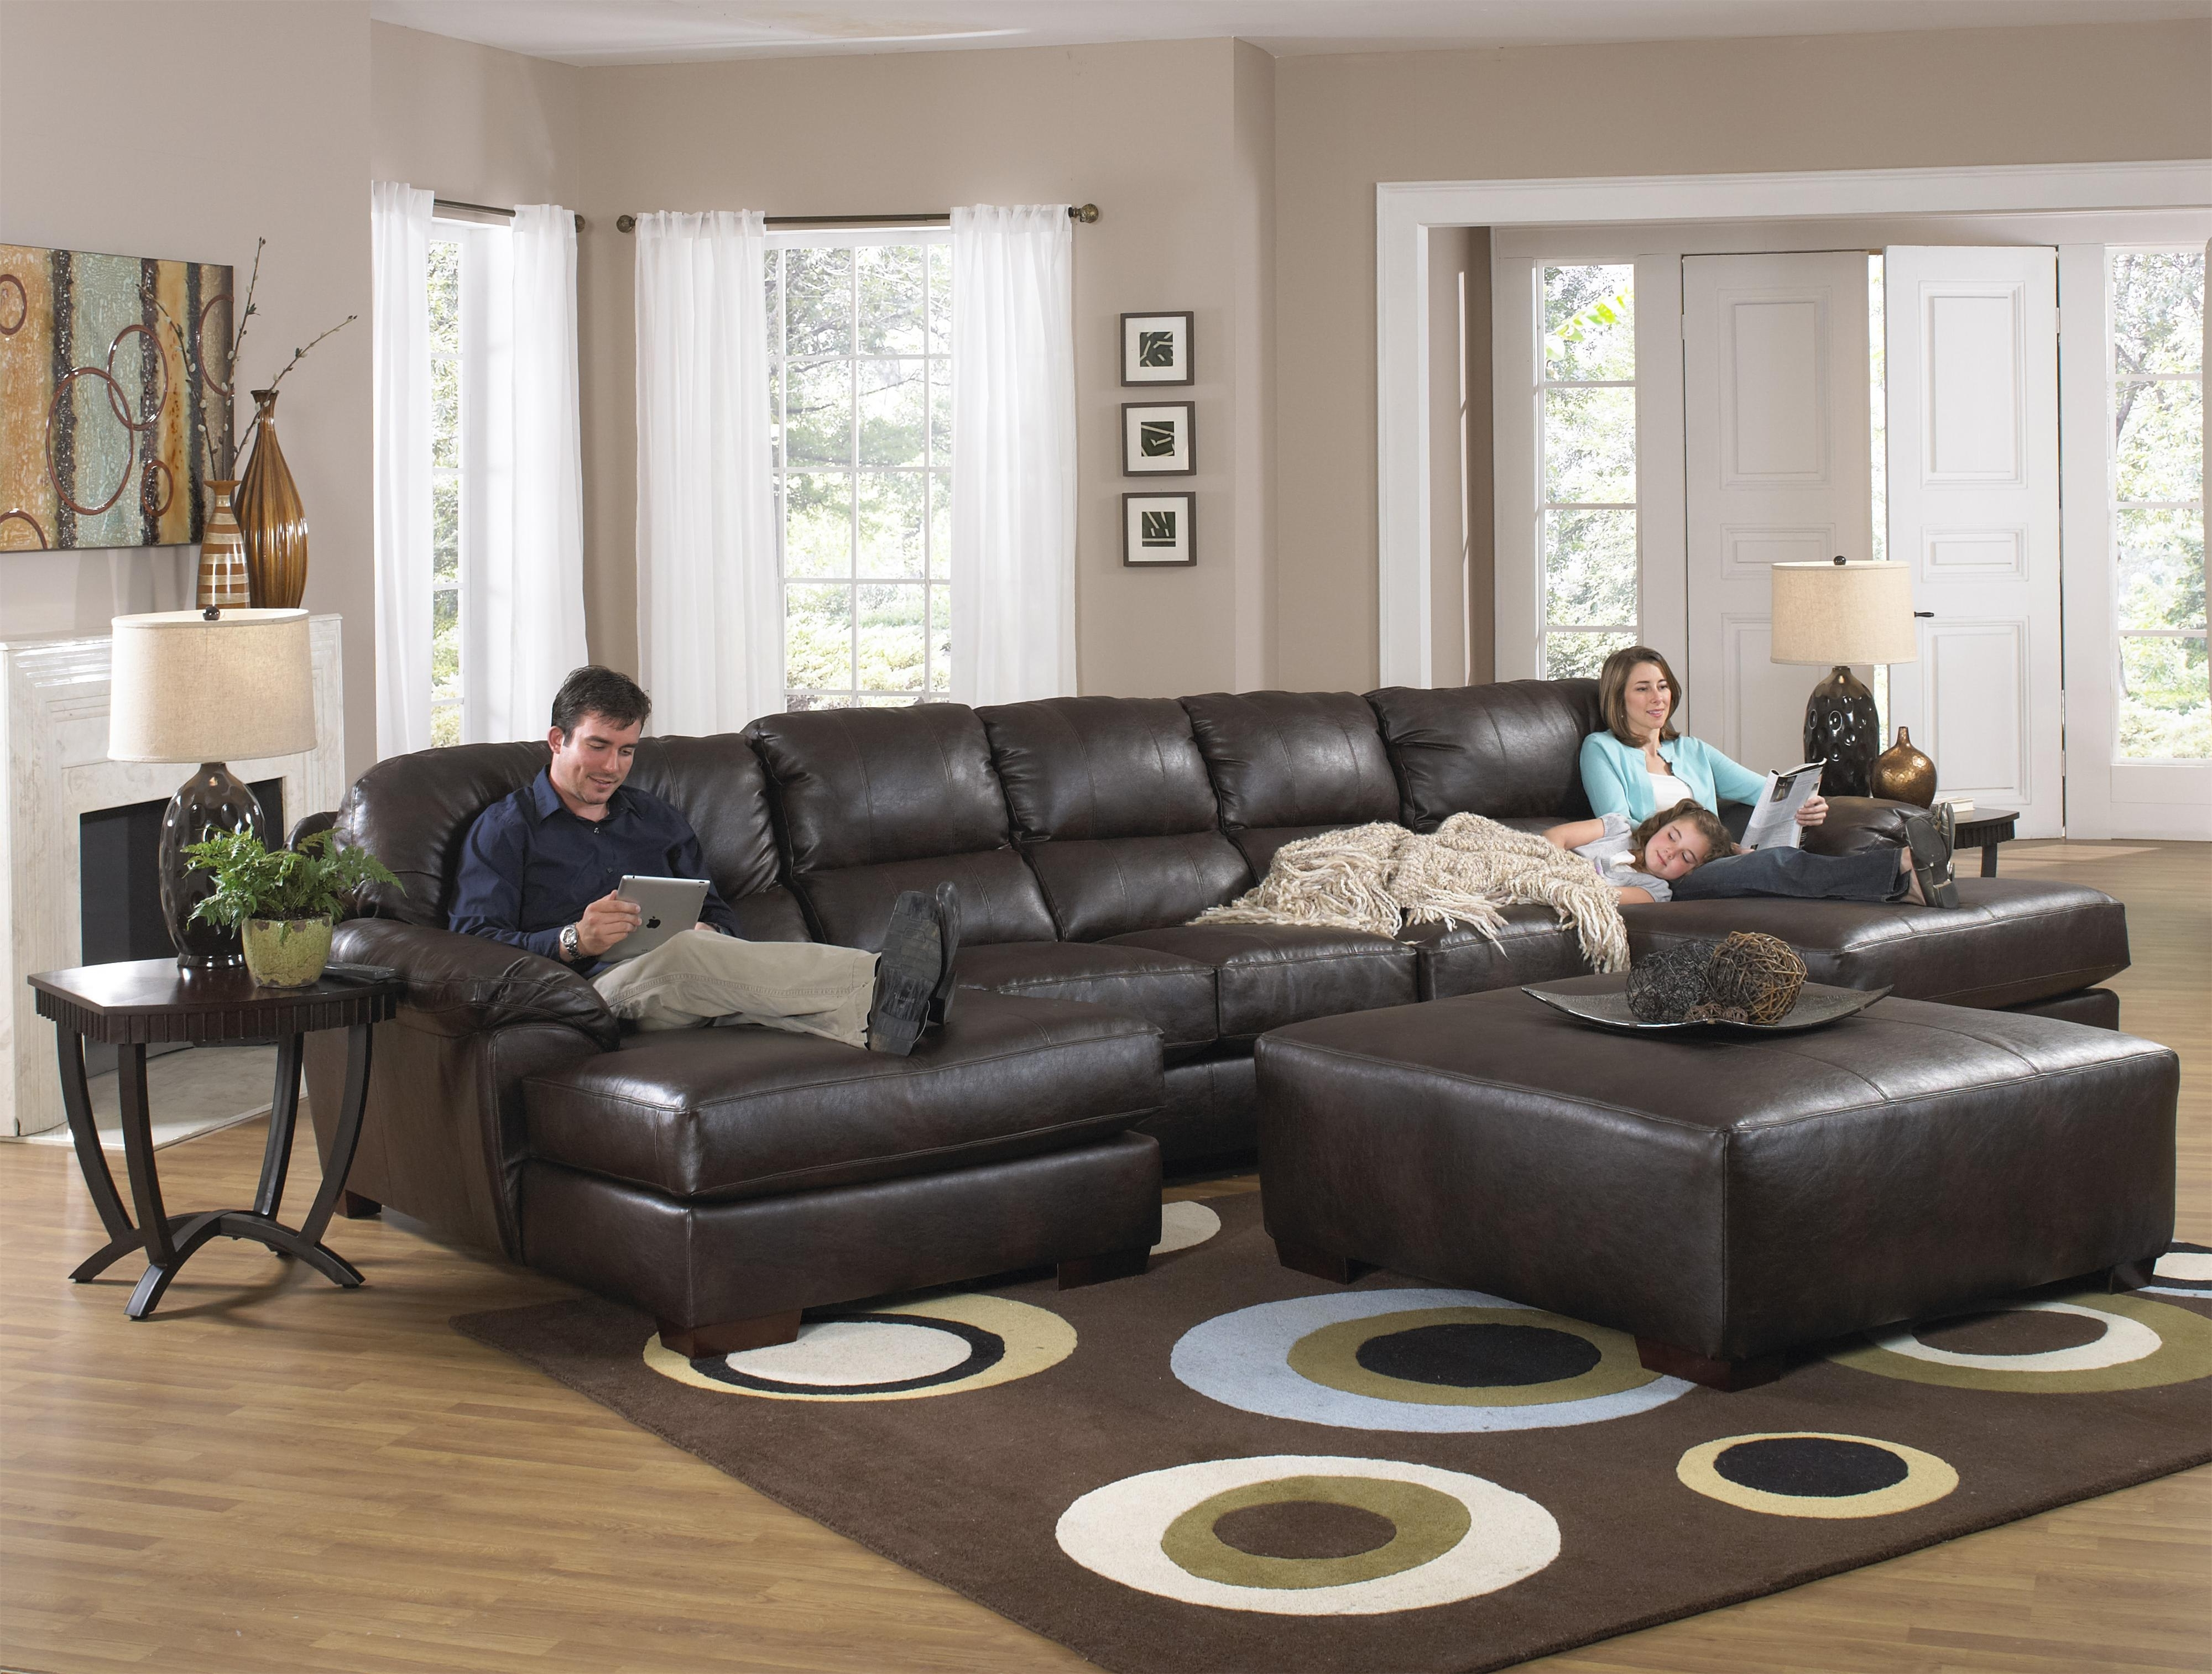 Sectional Couches With Large Ottoman With Trendy Sofa : Beautiful Large Sectional Sofa With Chaise L Shaped Cream (View 8 of 20)